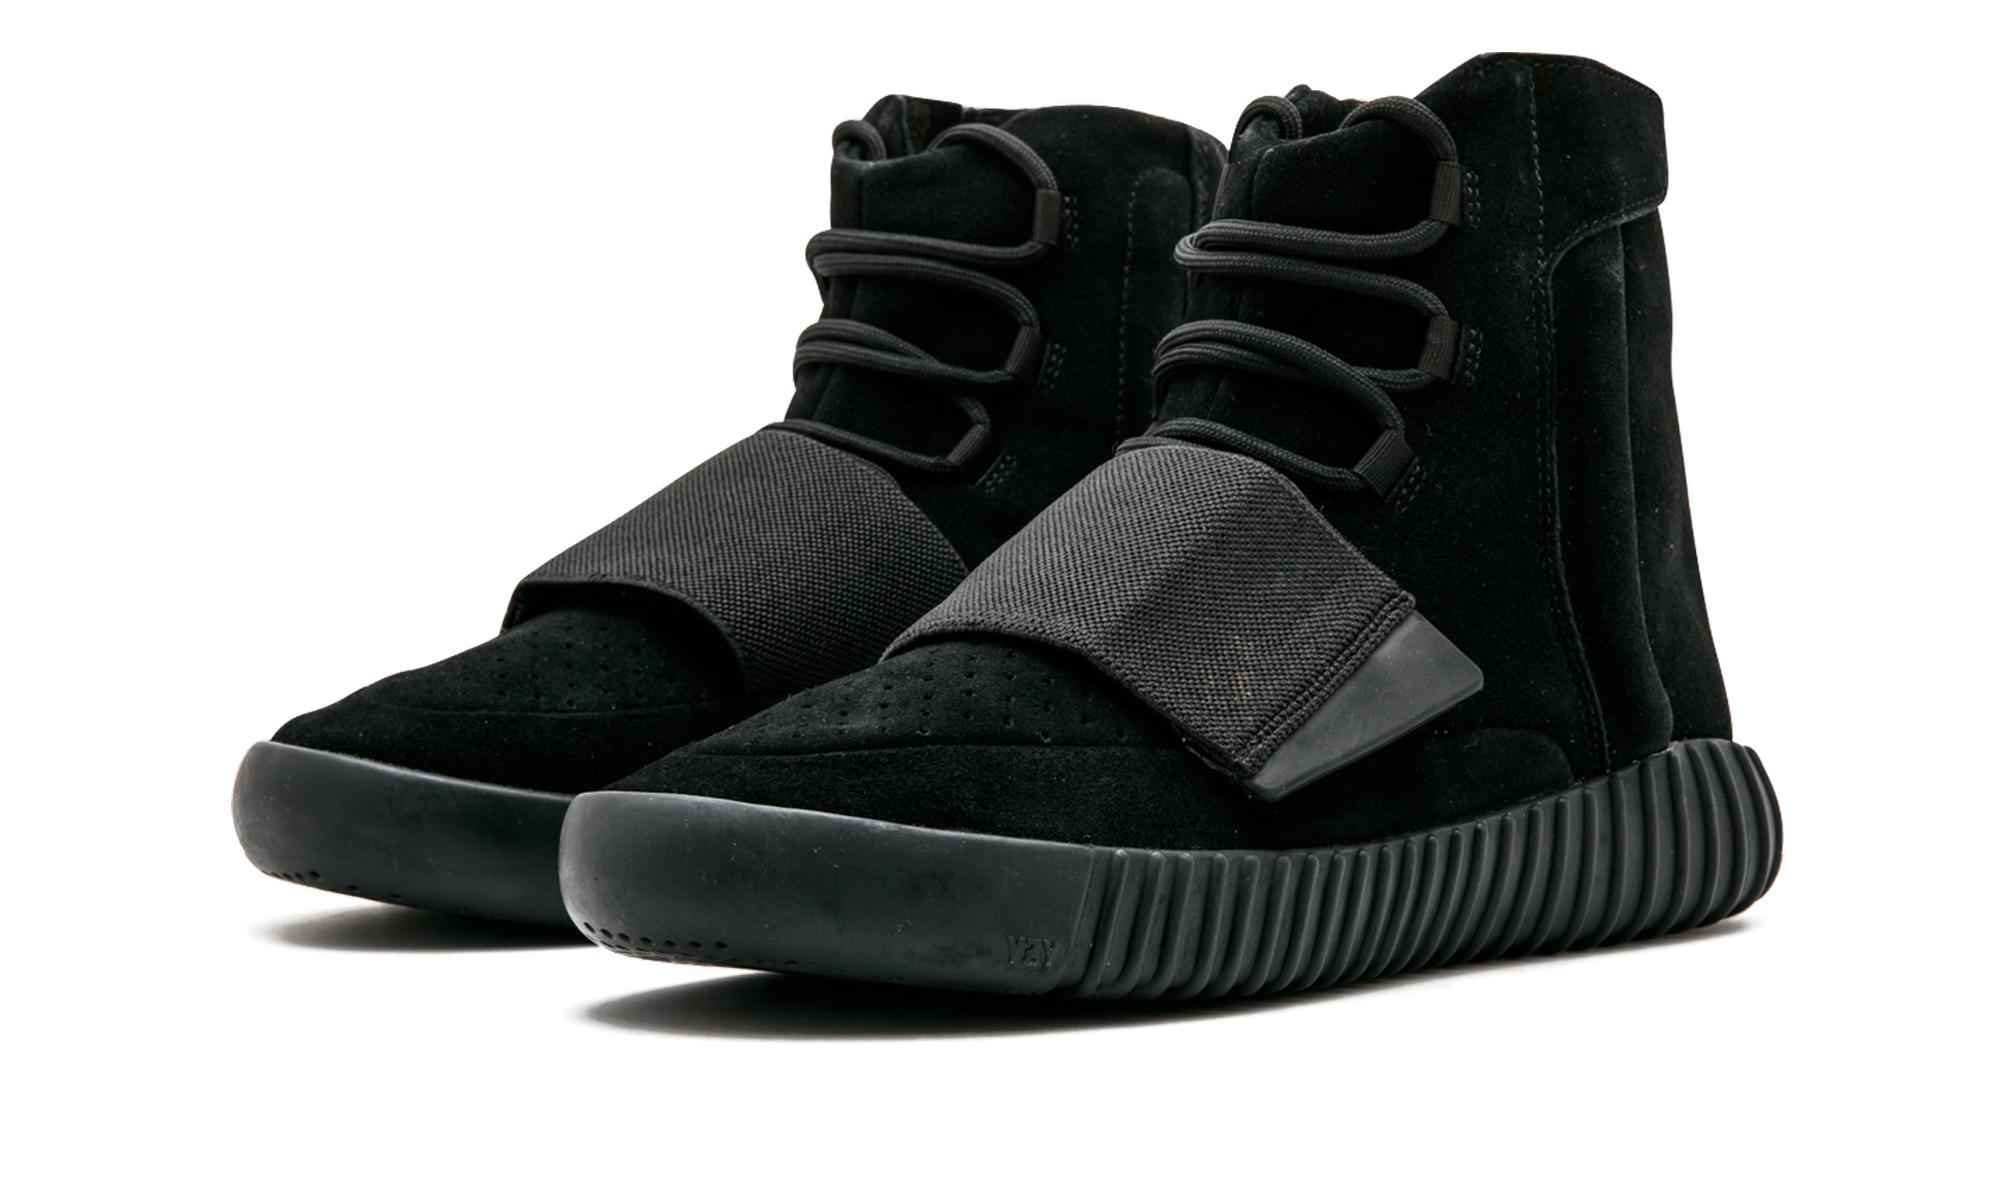 b6c2fed83e8 Adidas - Black Yeezy 750 Boost - Lyst. View fullscreen